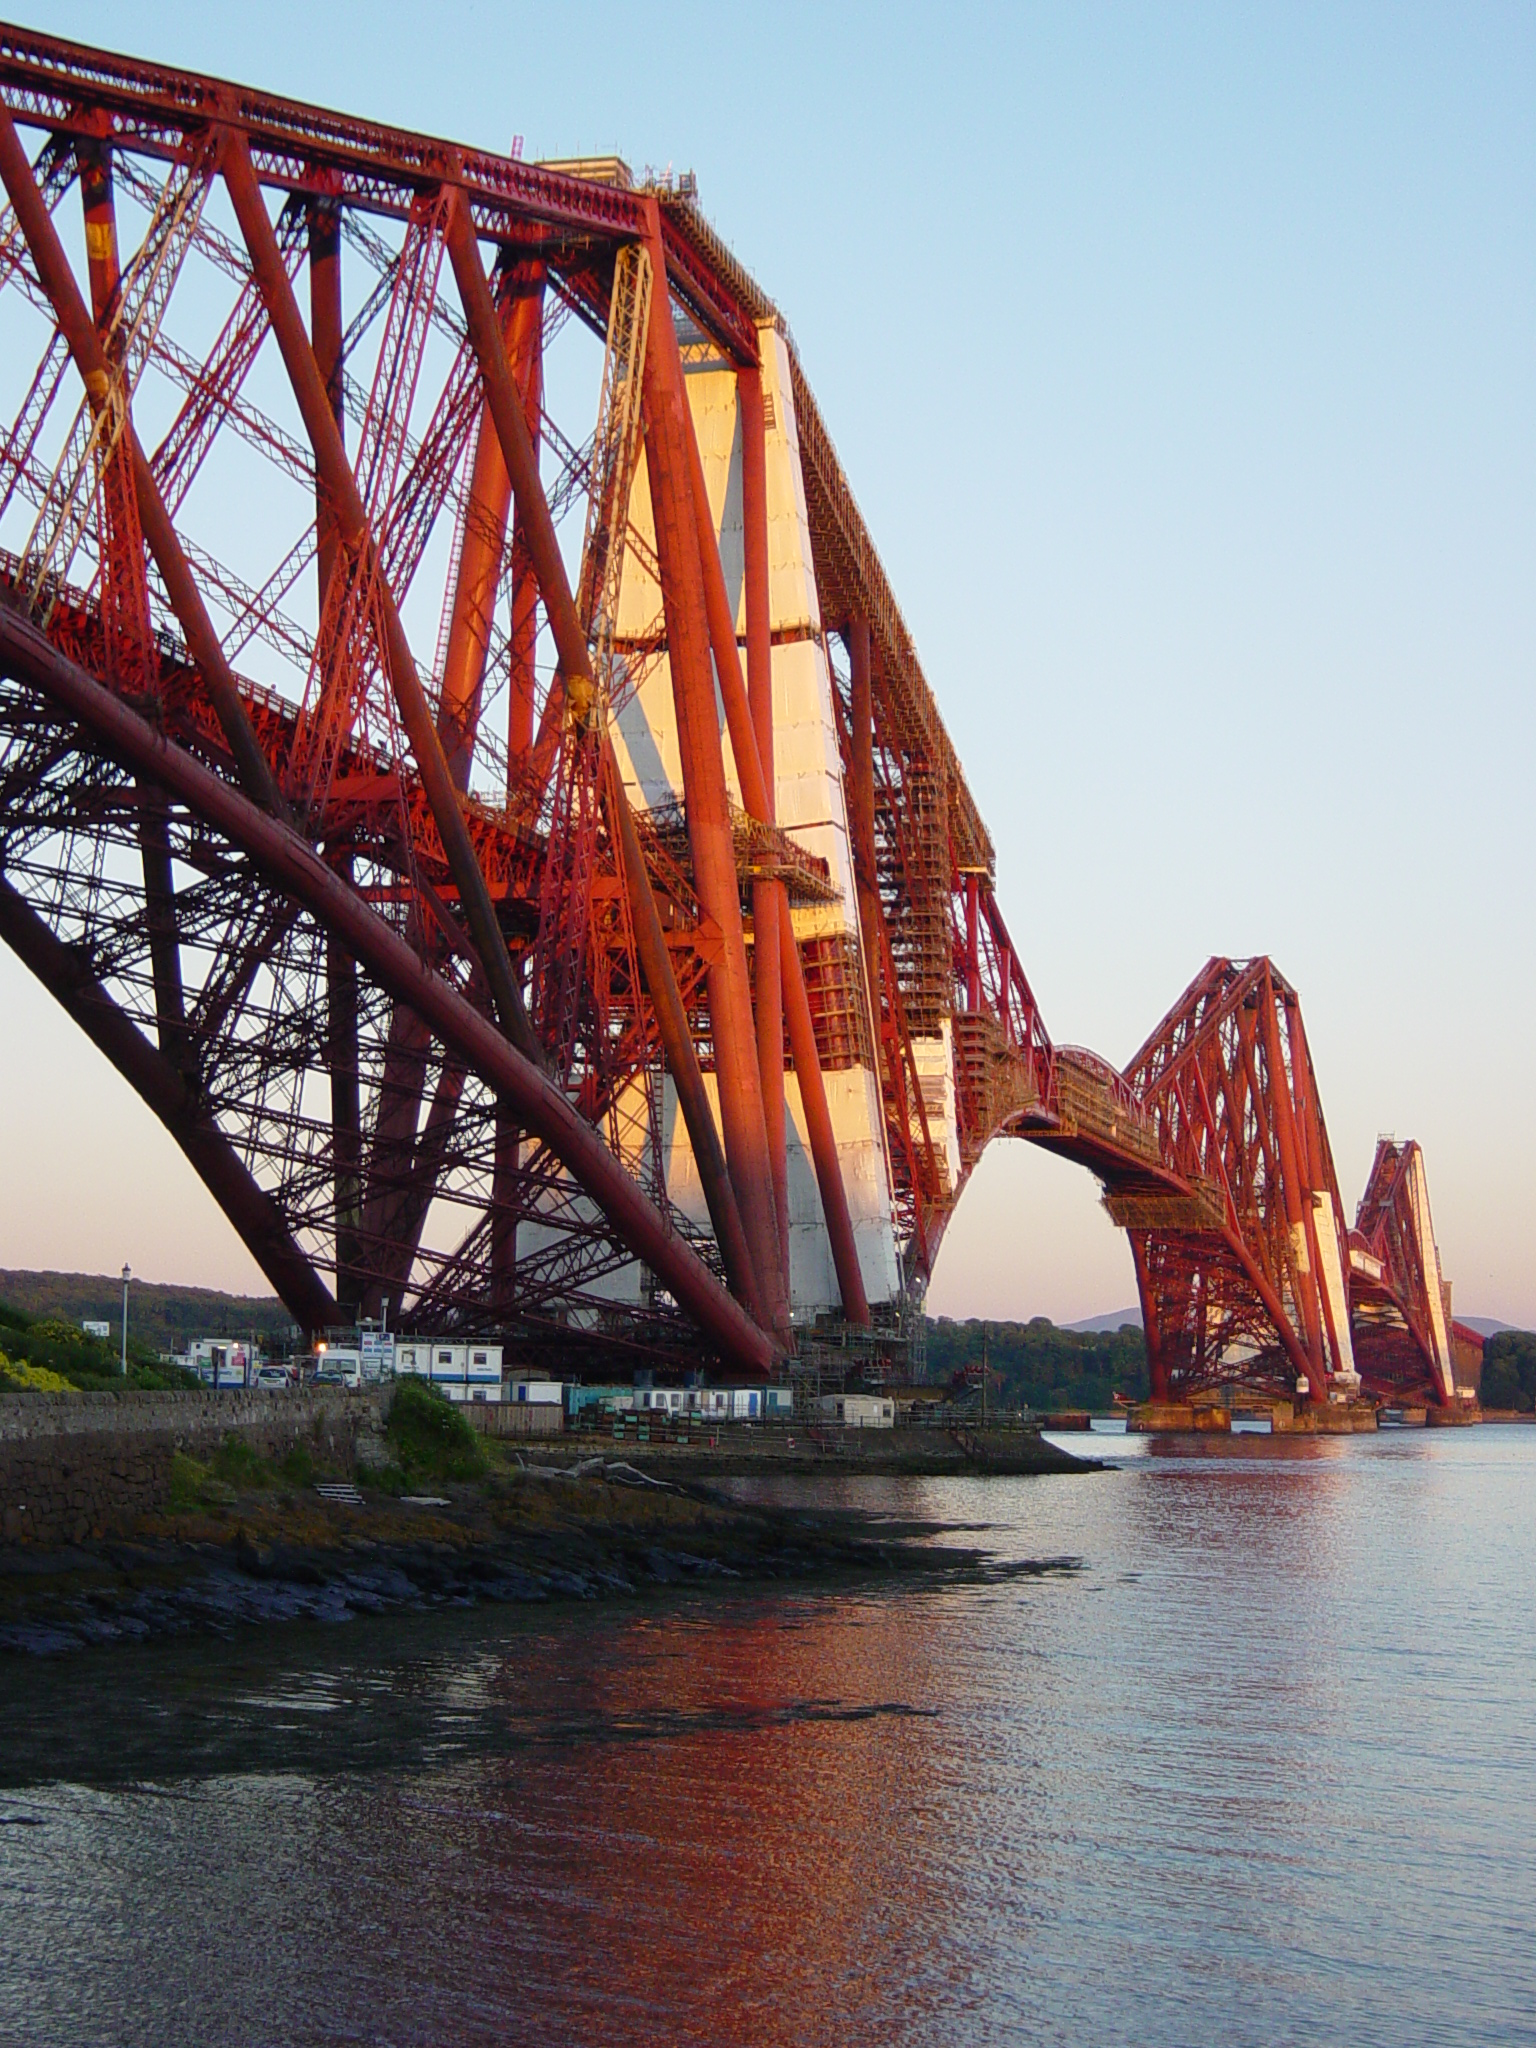 The Forth Bridge, designed by Sir Benjamin Baker and Sir John Fowler, opened in 1890, and now owned by Network Rail, is designated as a Category A listed building by Historic Scotland.